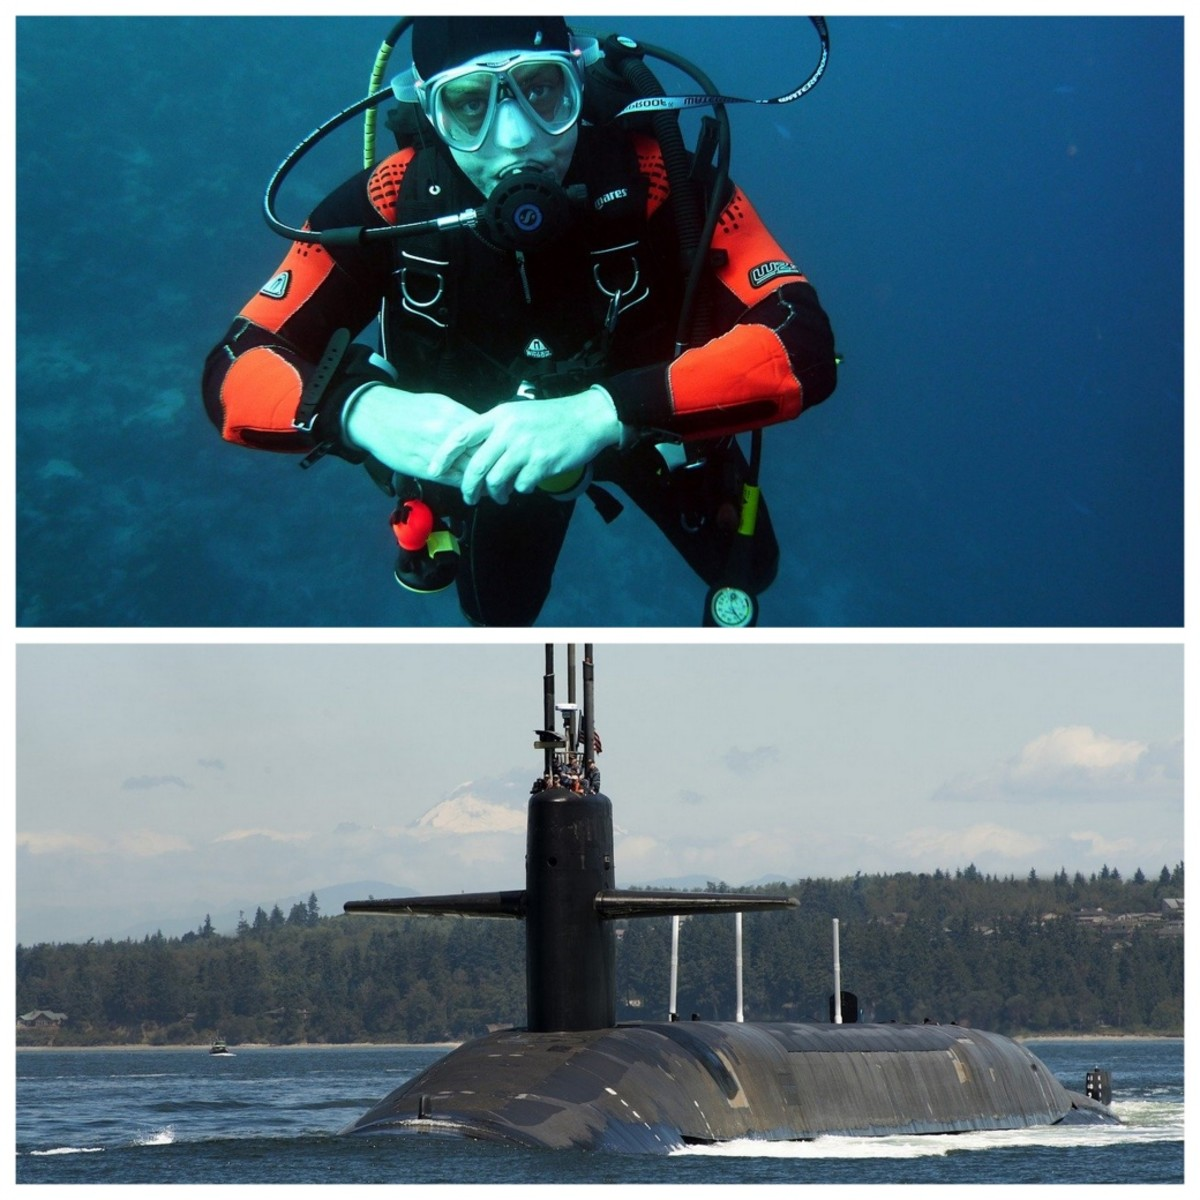 A scuba diver needs to have neutral buoyancy. A submarine needs to have neutral, positive and negative buoyancy.